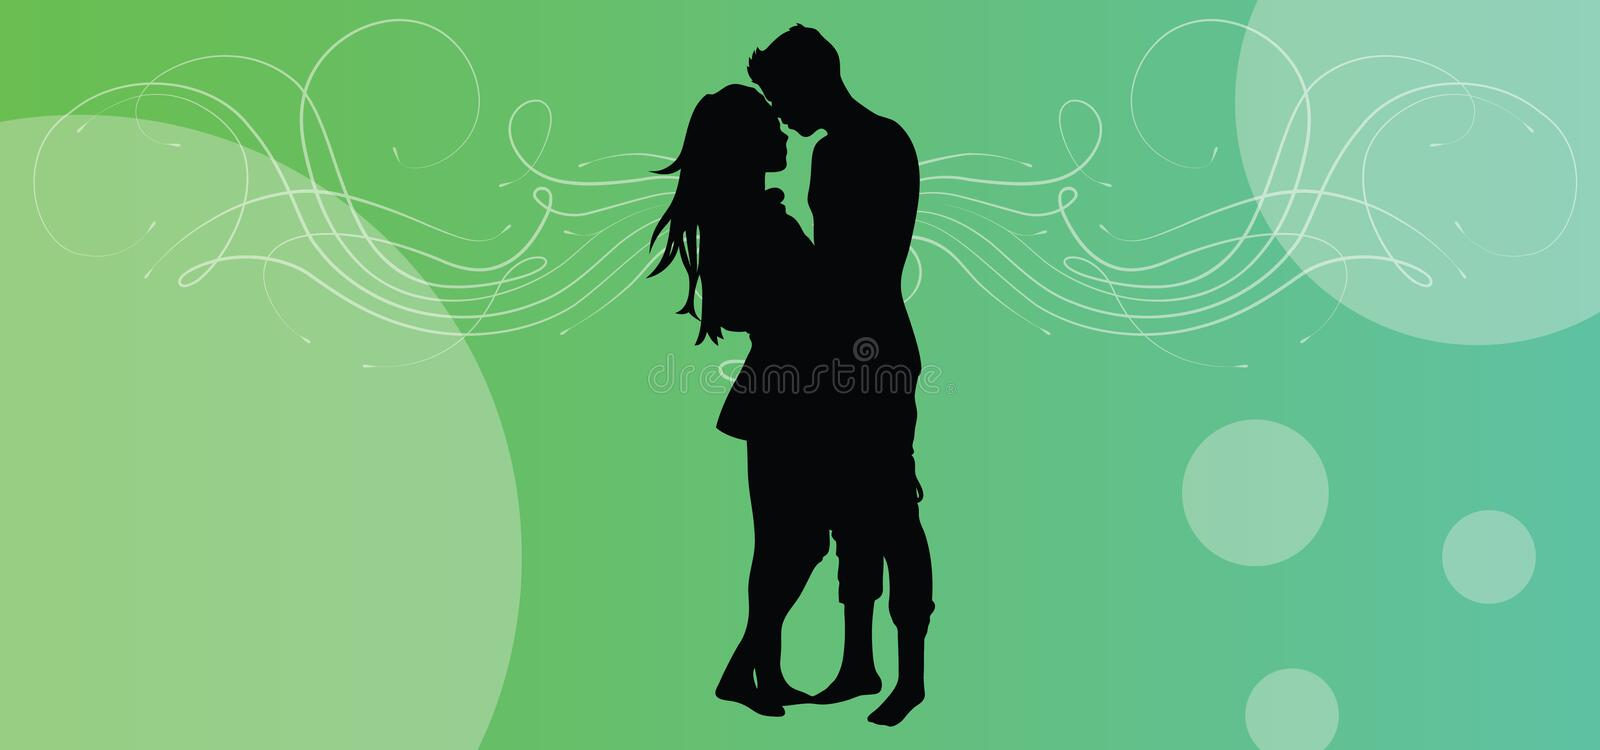 Abstract Happy valentines day background couple eps loving pictures valentine 2018 romance kiss wedding cipart romantic icons vector illustration